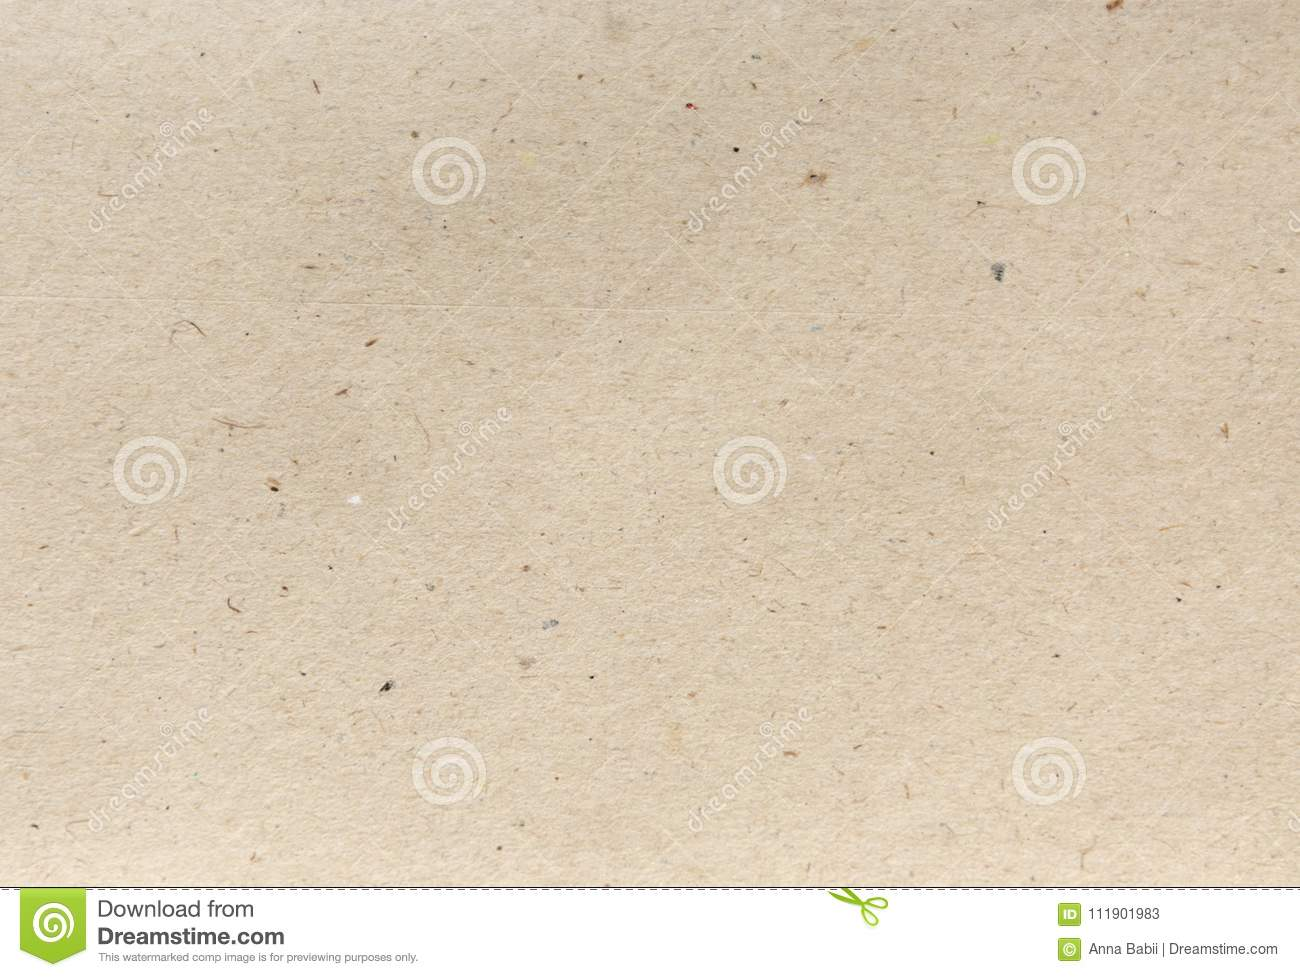 Craft paper texture. Grunge background.